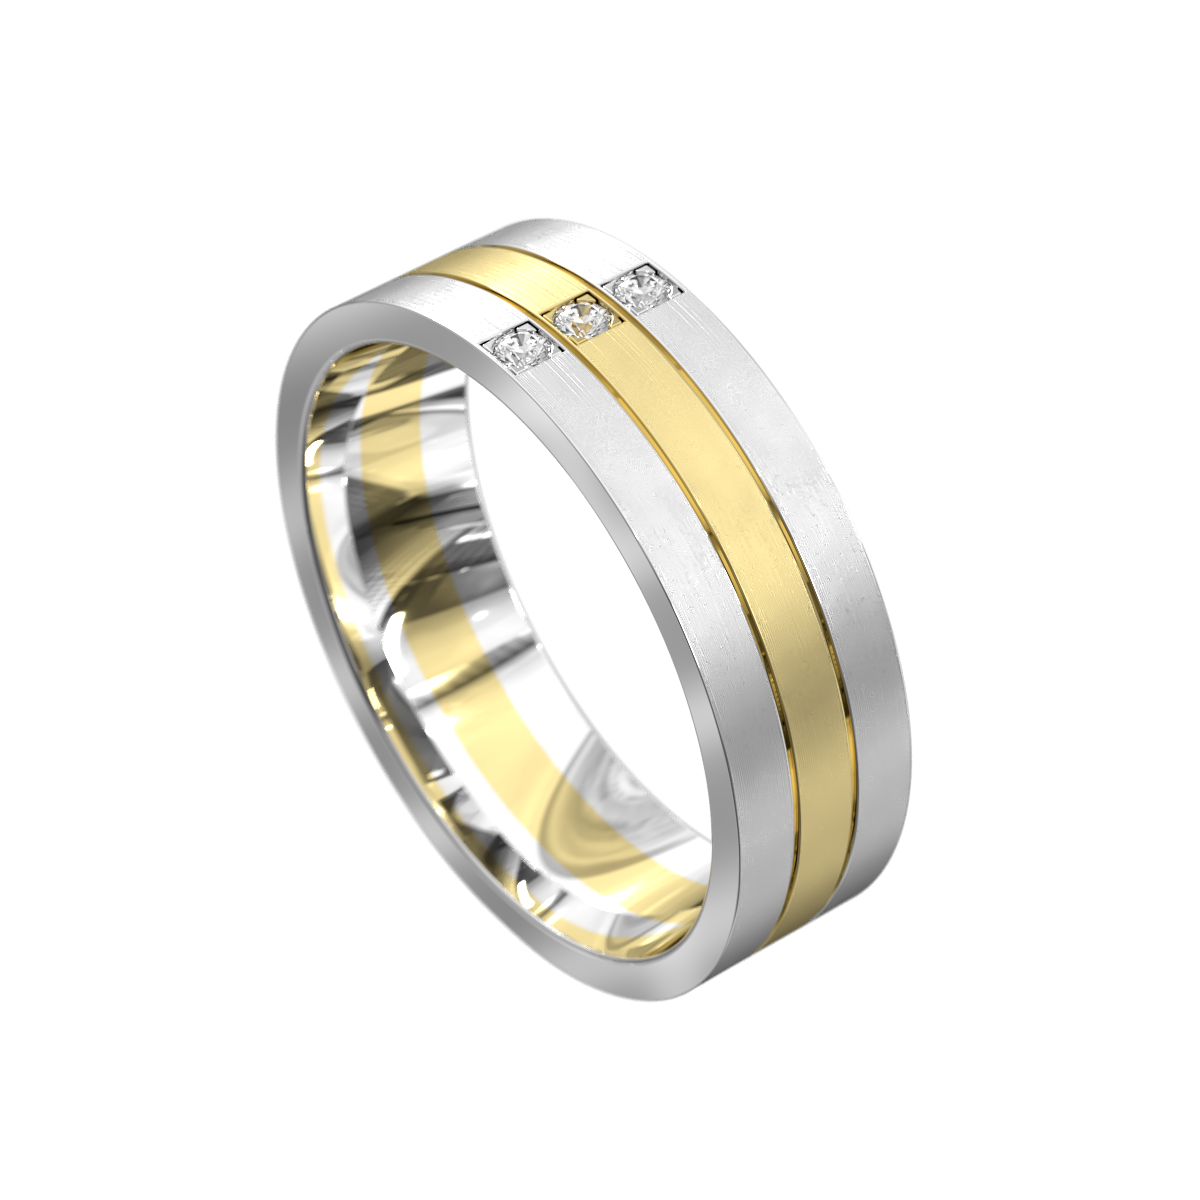 WWAD7028-WY – Brushed White and Yellow Gold Mens Wedding Ring